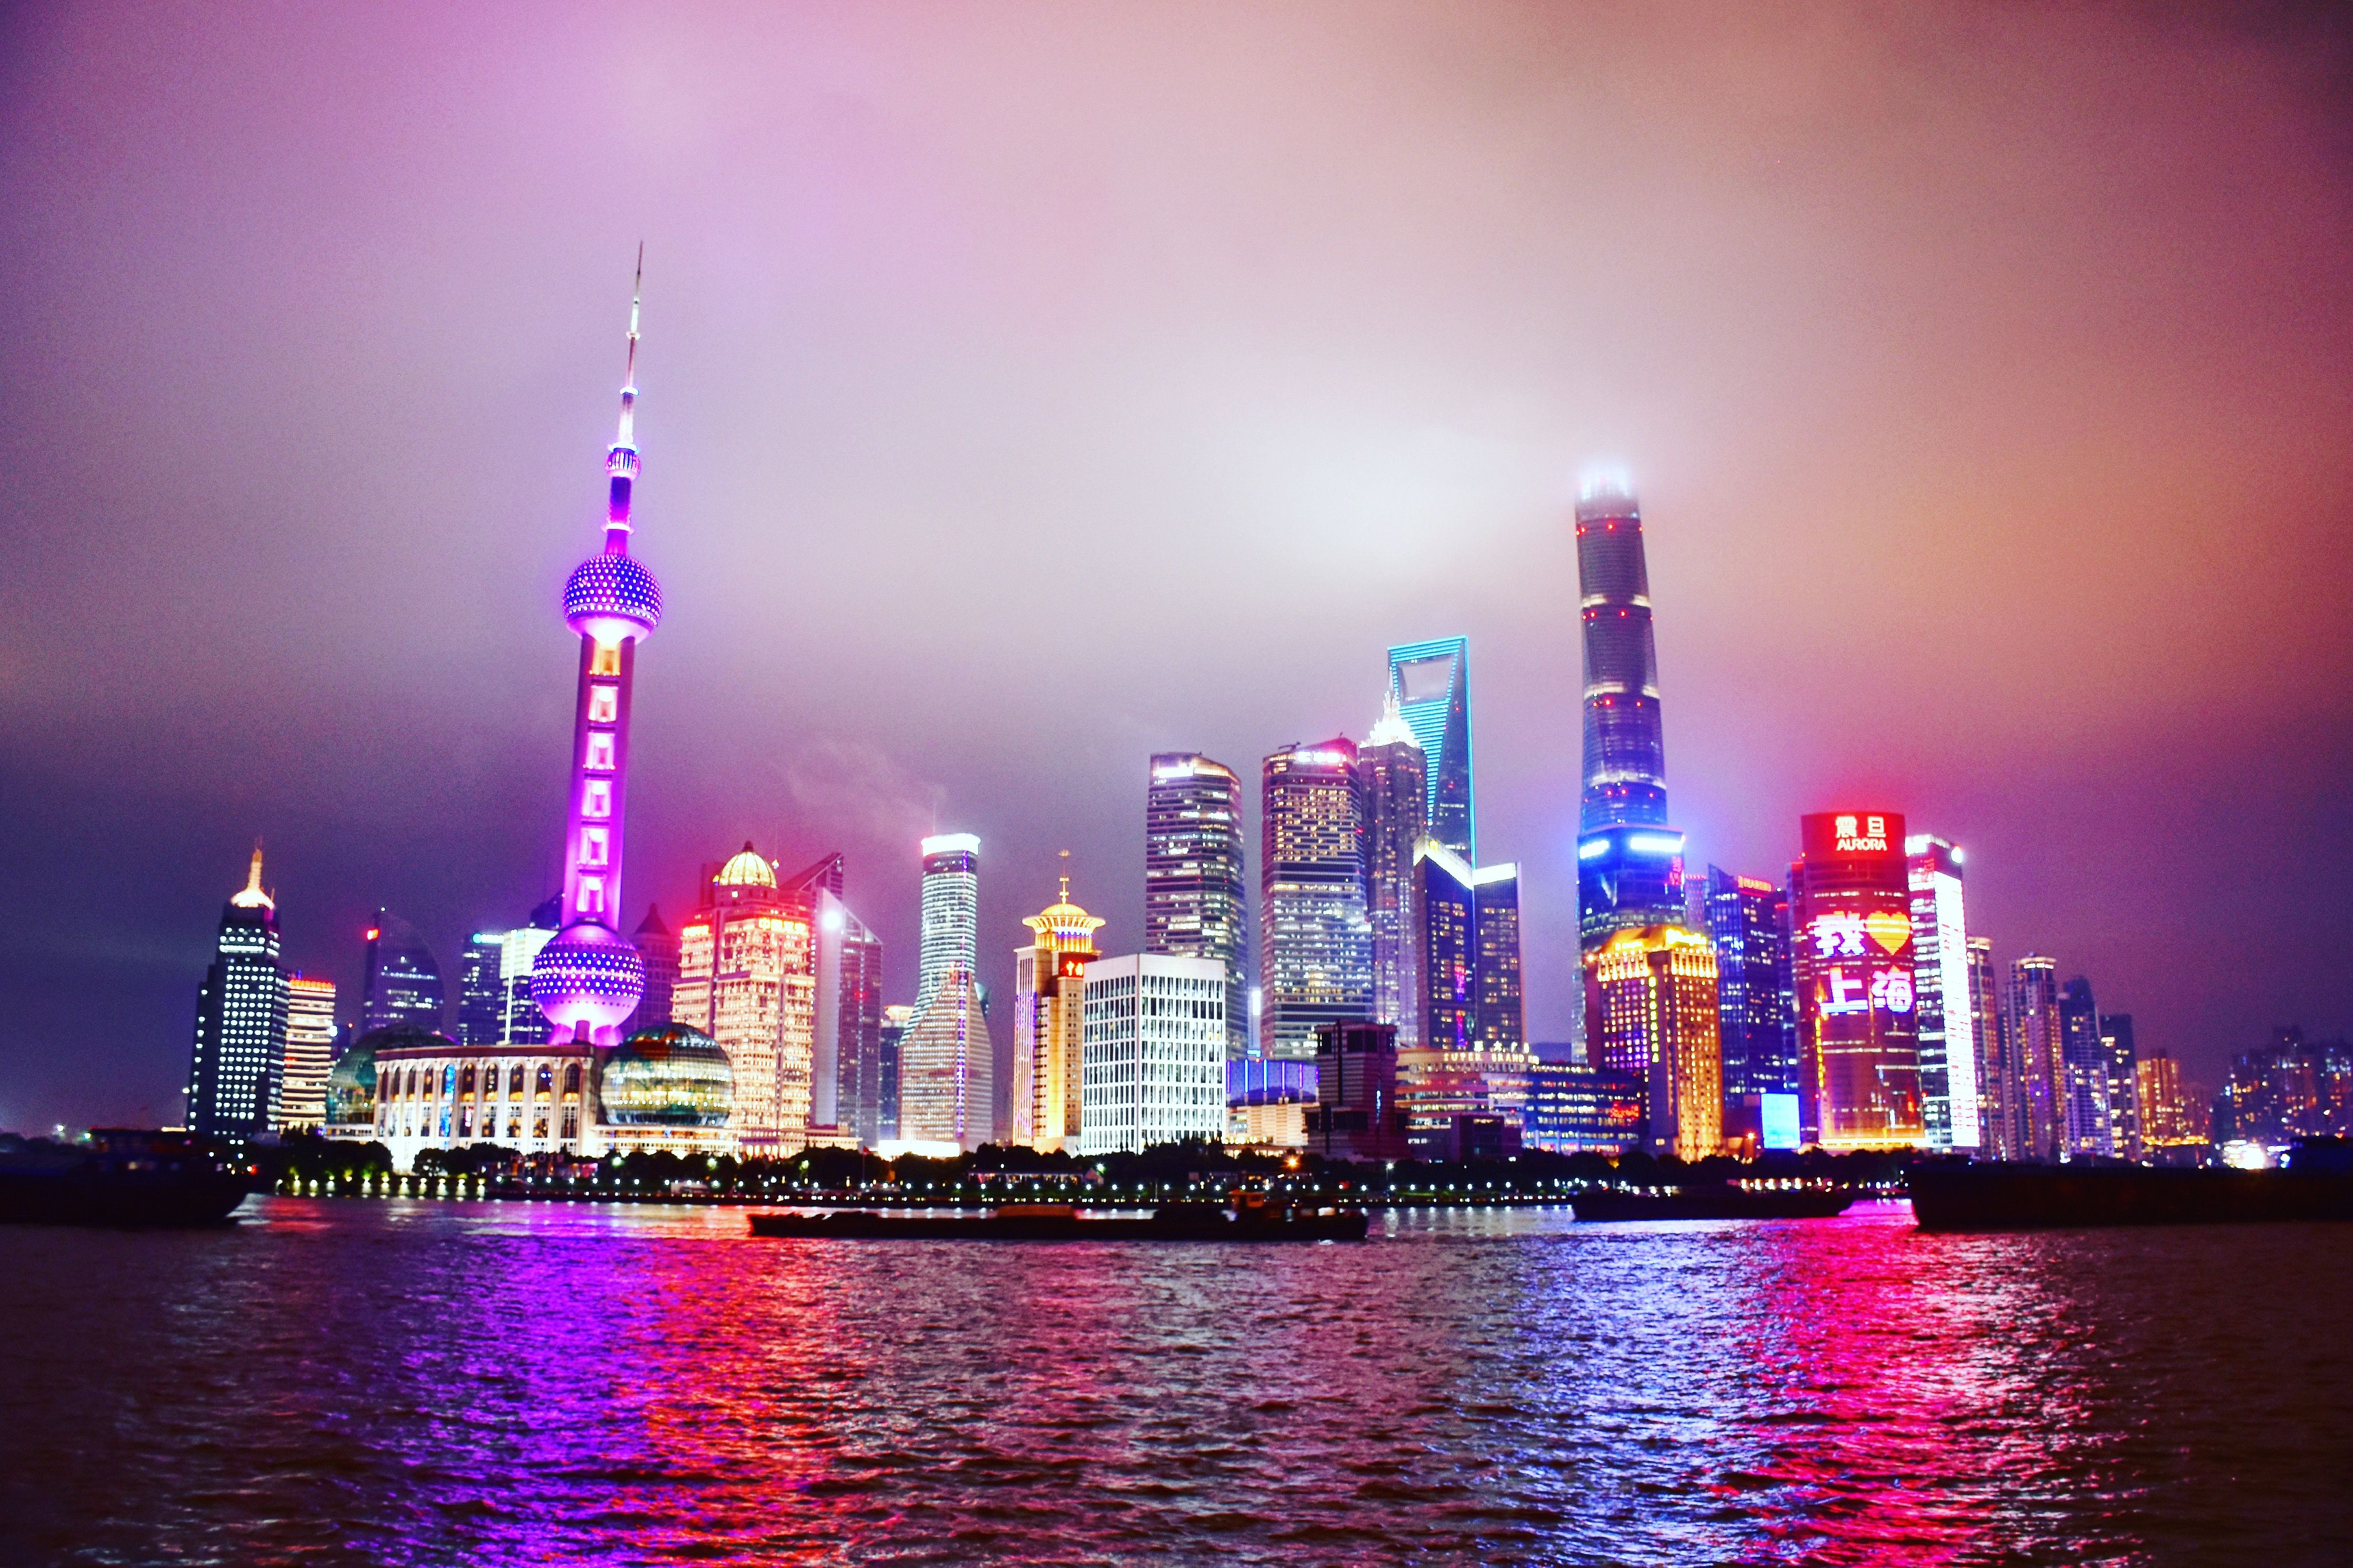 Night View Of The Pudong Skyline From The Bund In Shanghai China So Bright Colorful Shanghai Night Skyline Beautiful Sunset